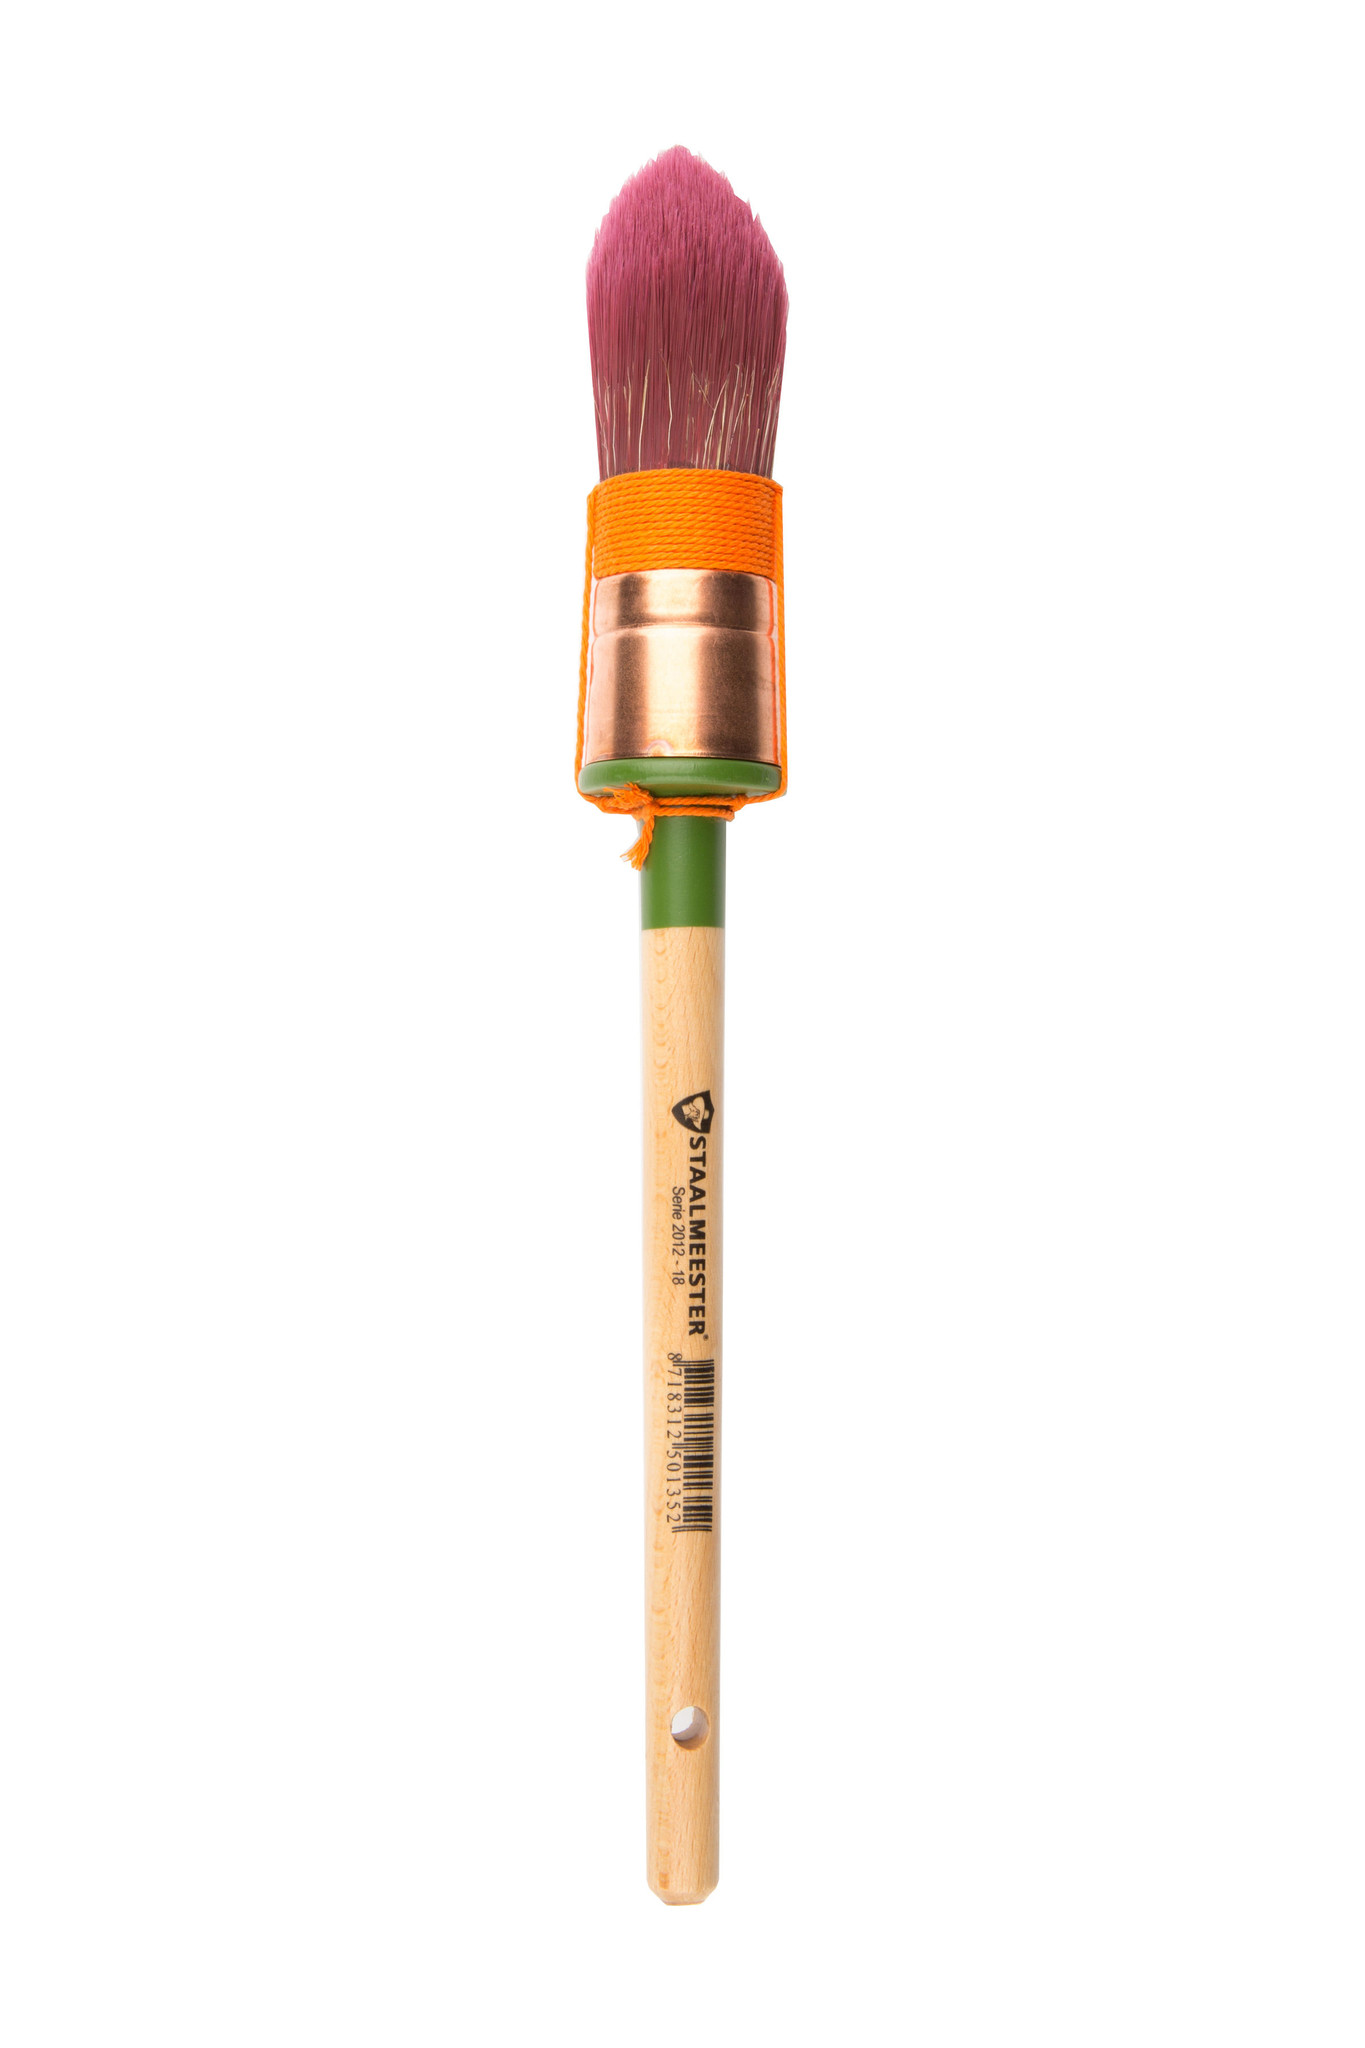 Staalmeester Brushes